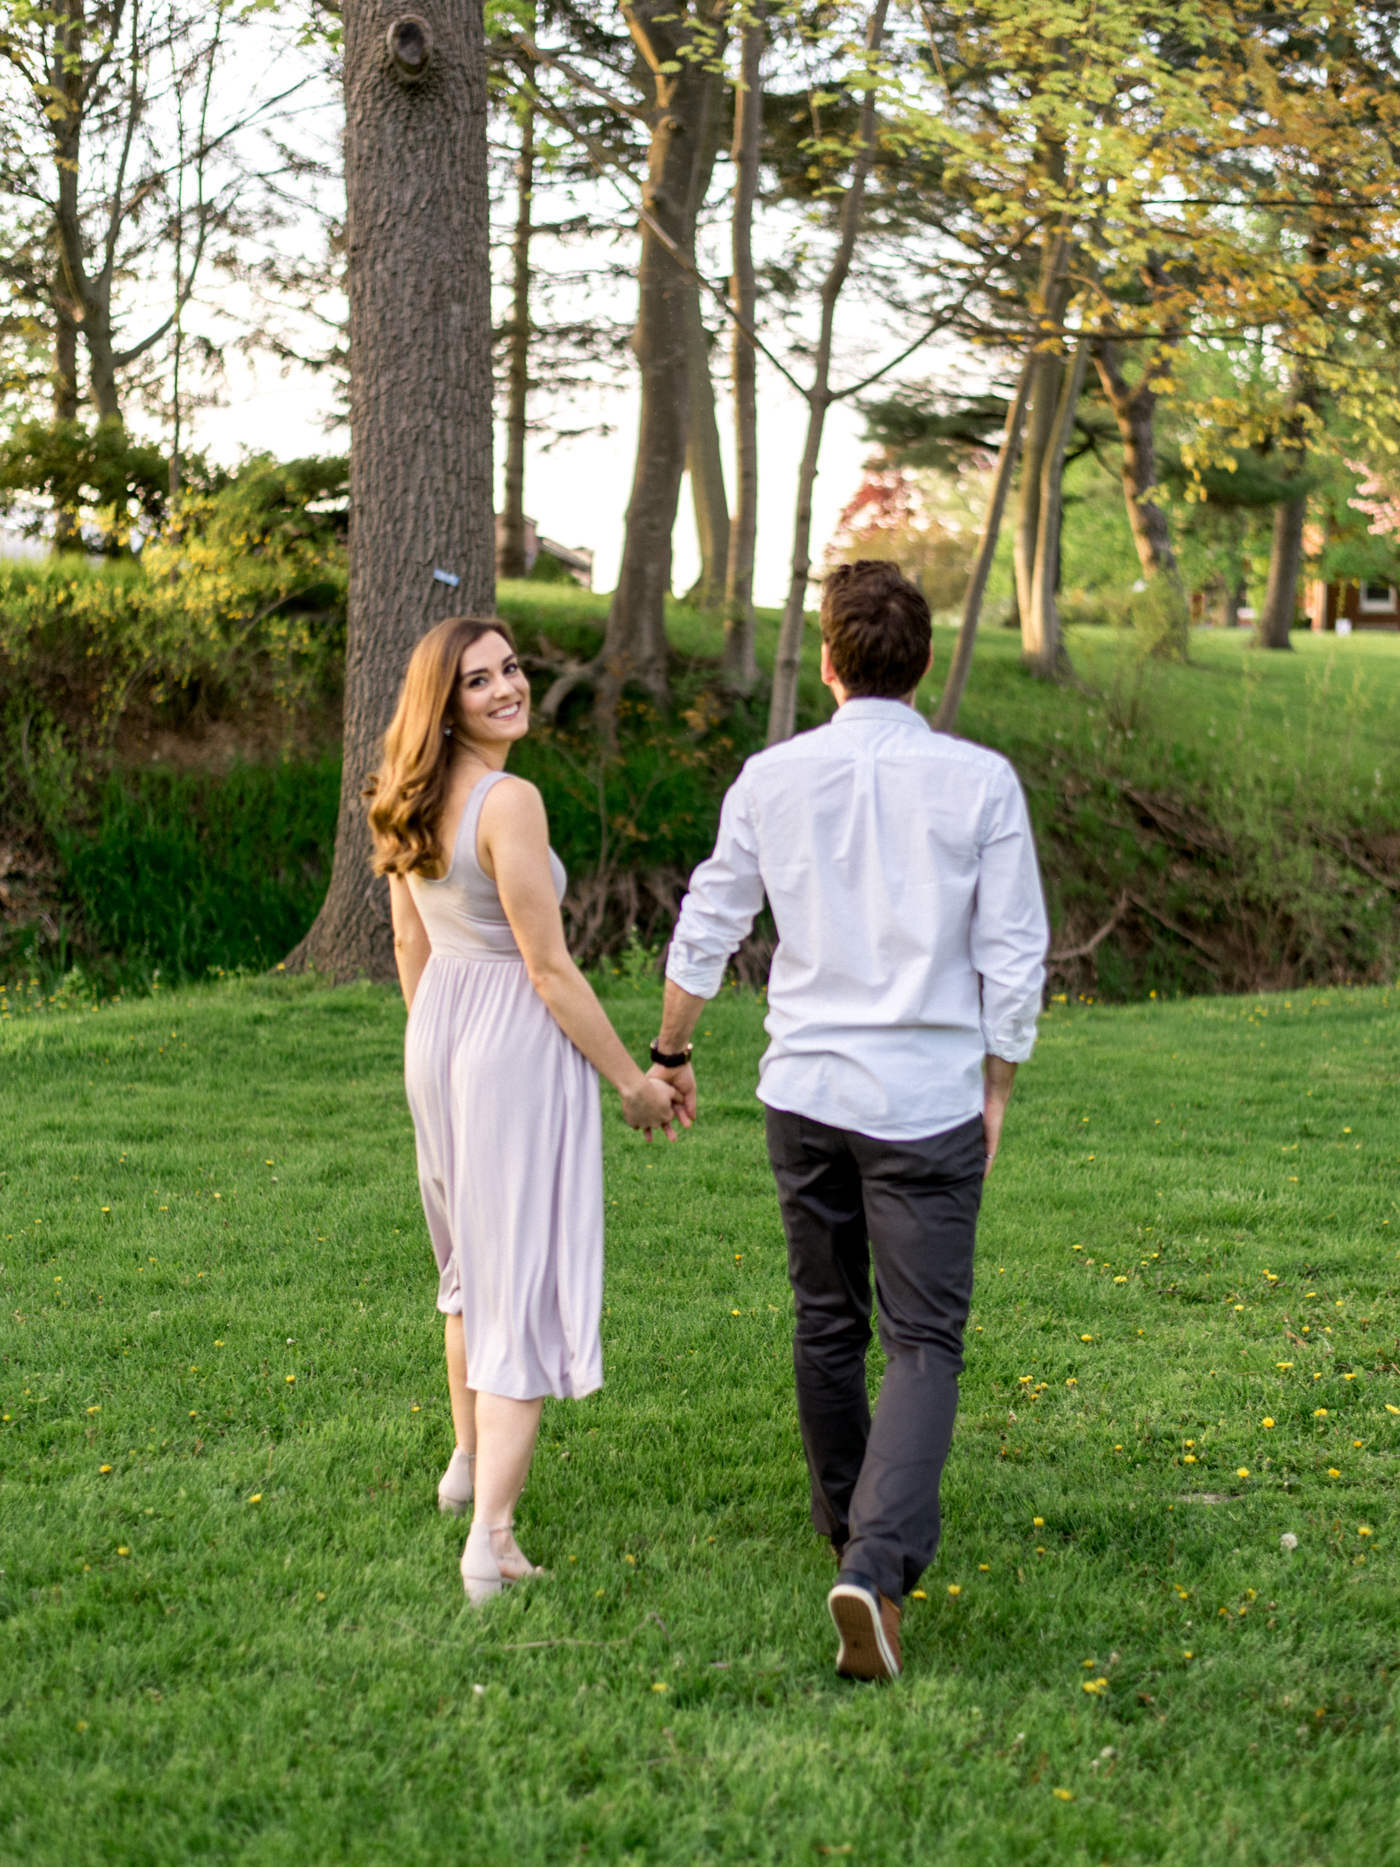 Chris & Heather's Engagement Session in Vineland Ontario Spring Blossoms Trees by Hush Hush Photography & Film Aidan Hennebry - 24.jpg